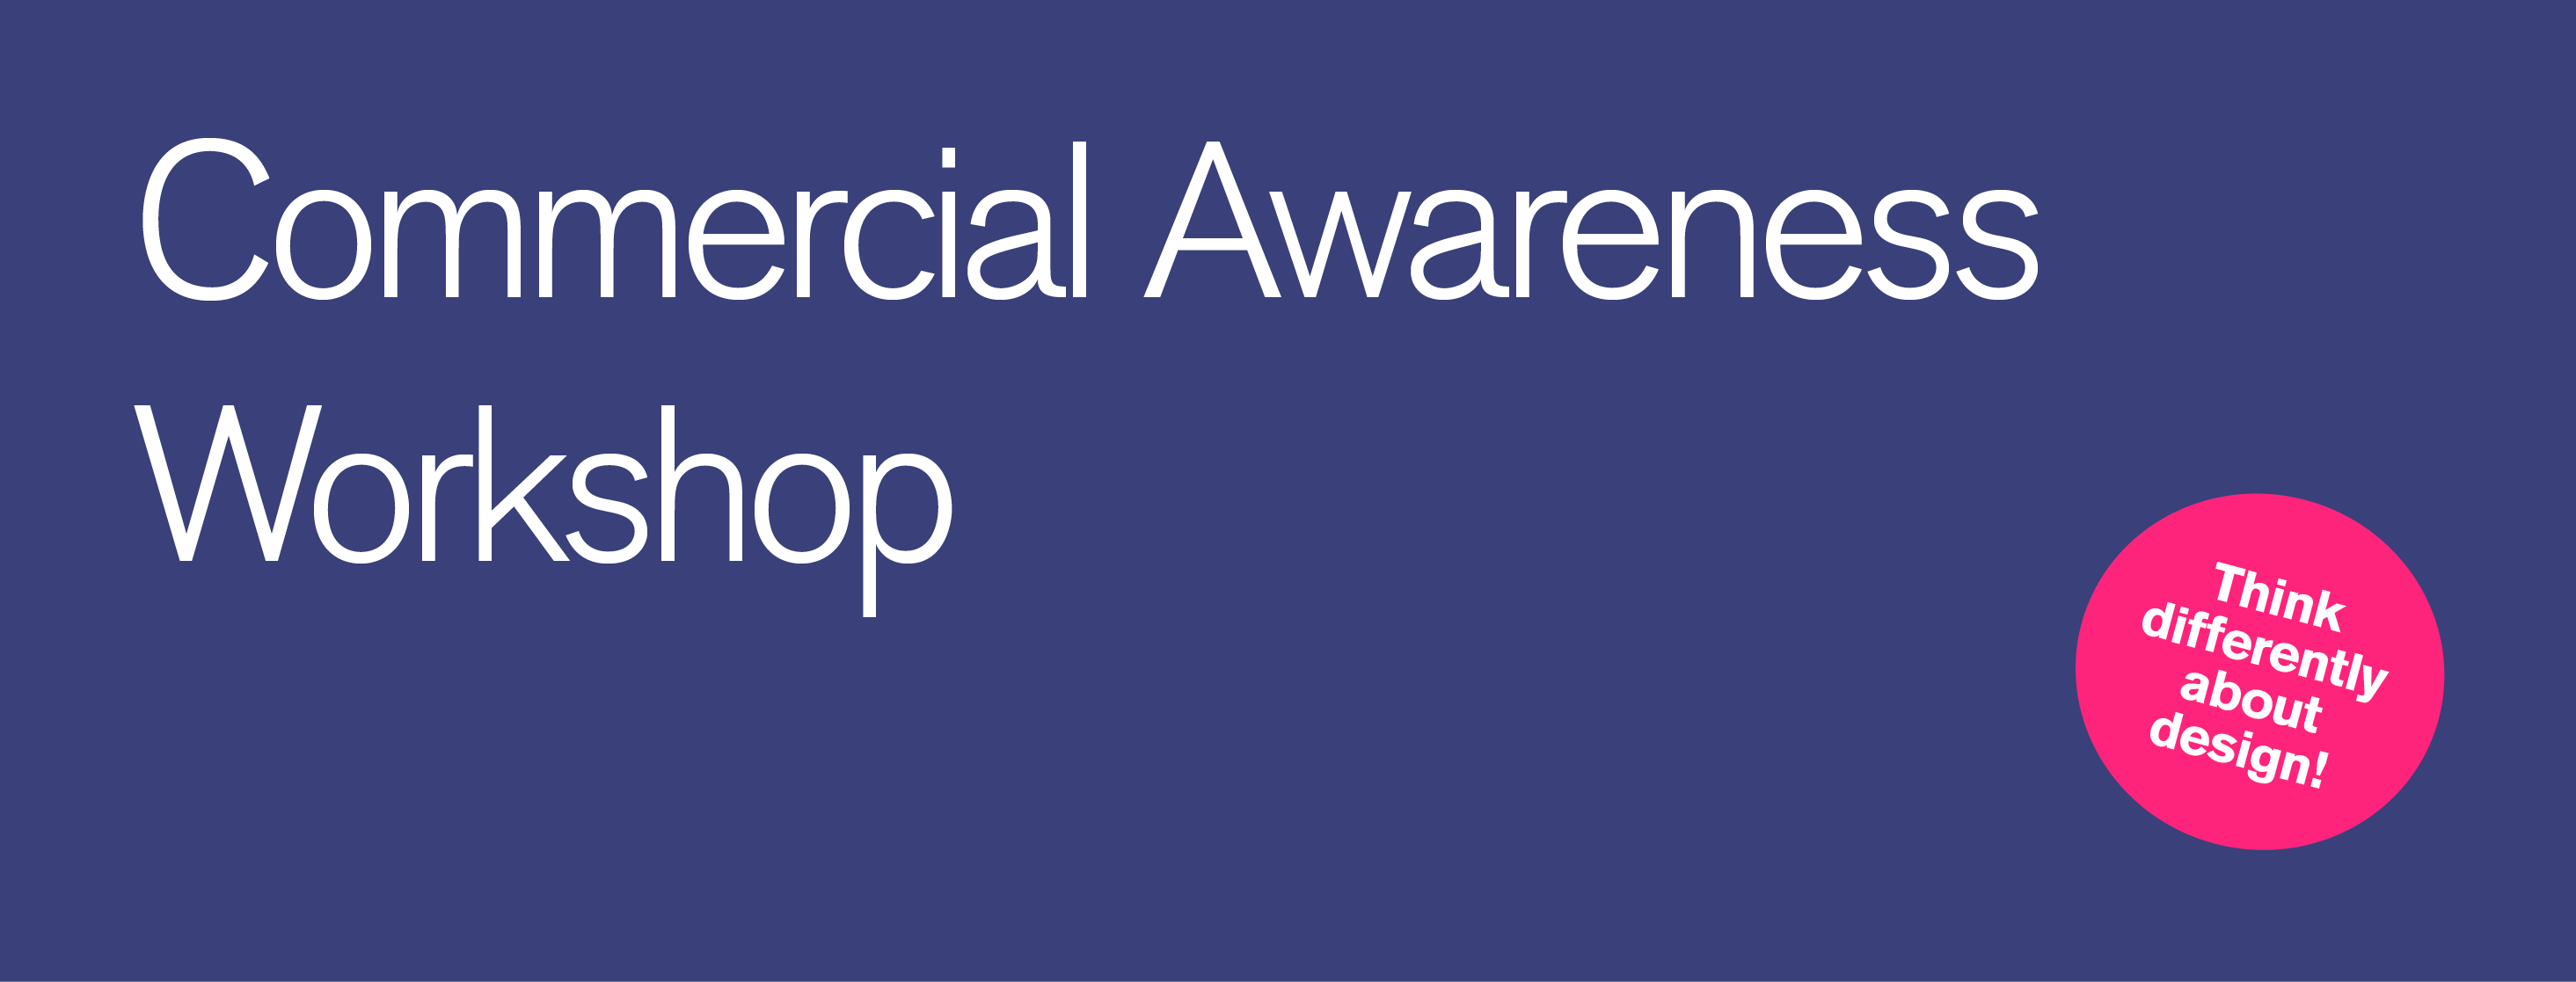 Commercial Awareness Workshops in 3 UK Locations: Creative Conditions